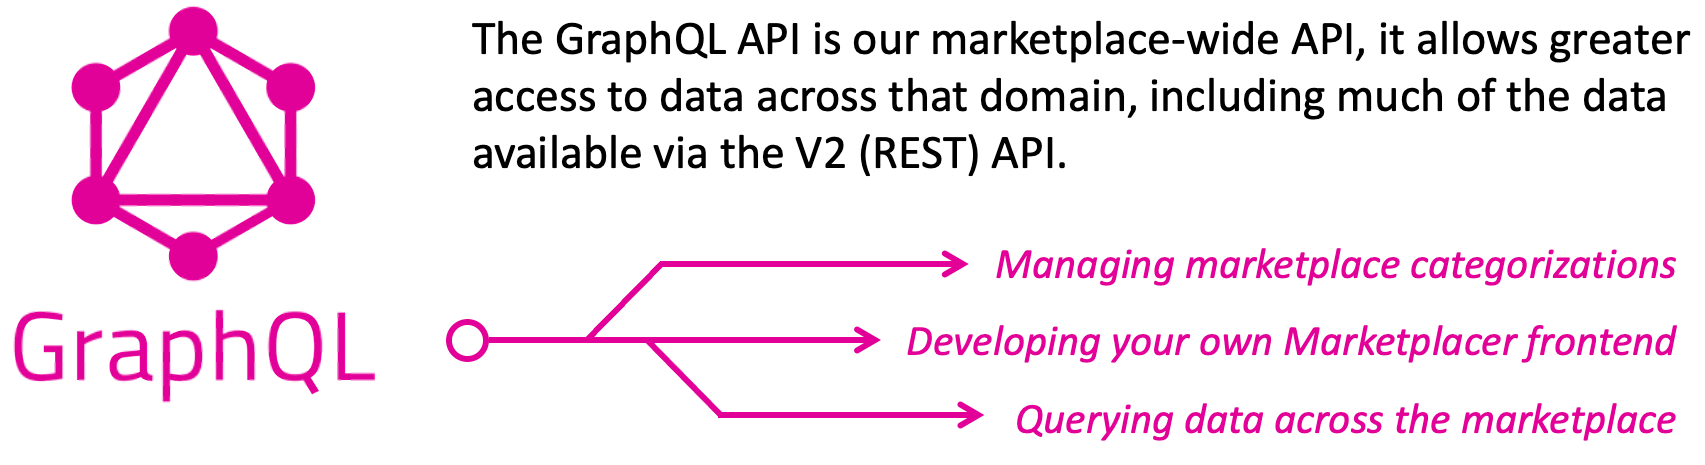 The GraphQL API is our marketplace-wide API, it allows greater access to data across that domain, including much of the data available via the V2 (REST) API. Some of the common use-cases for this API are: managing marketplace categorizations, developing your own Marketplacer front end and querying data across the marketplace.